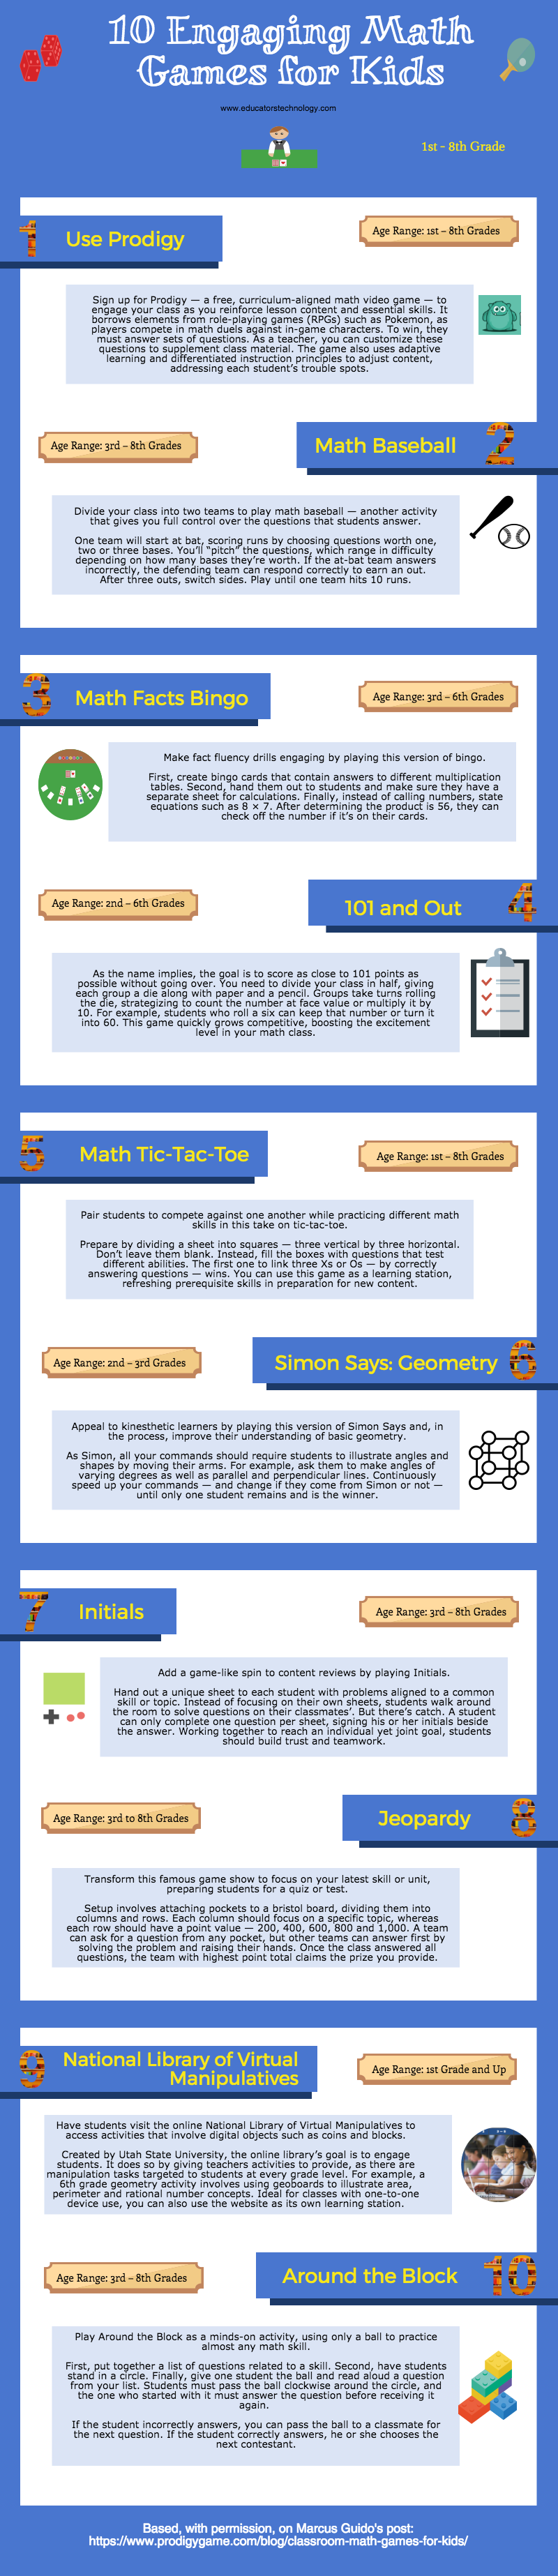 An infographic displaying 10 classroom math games for kids in 1st o 8th grades.